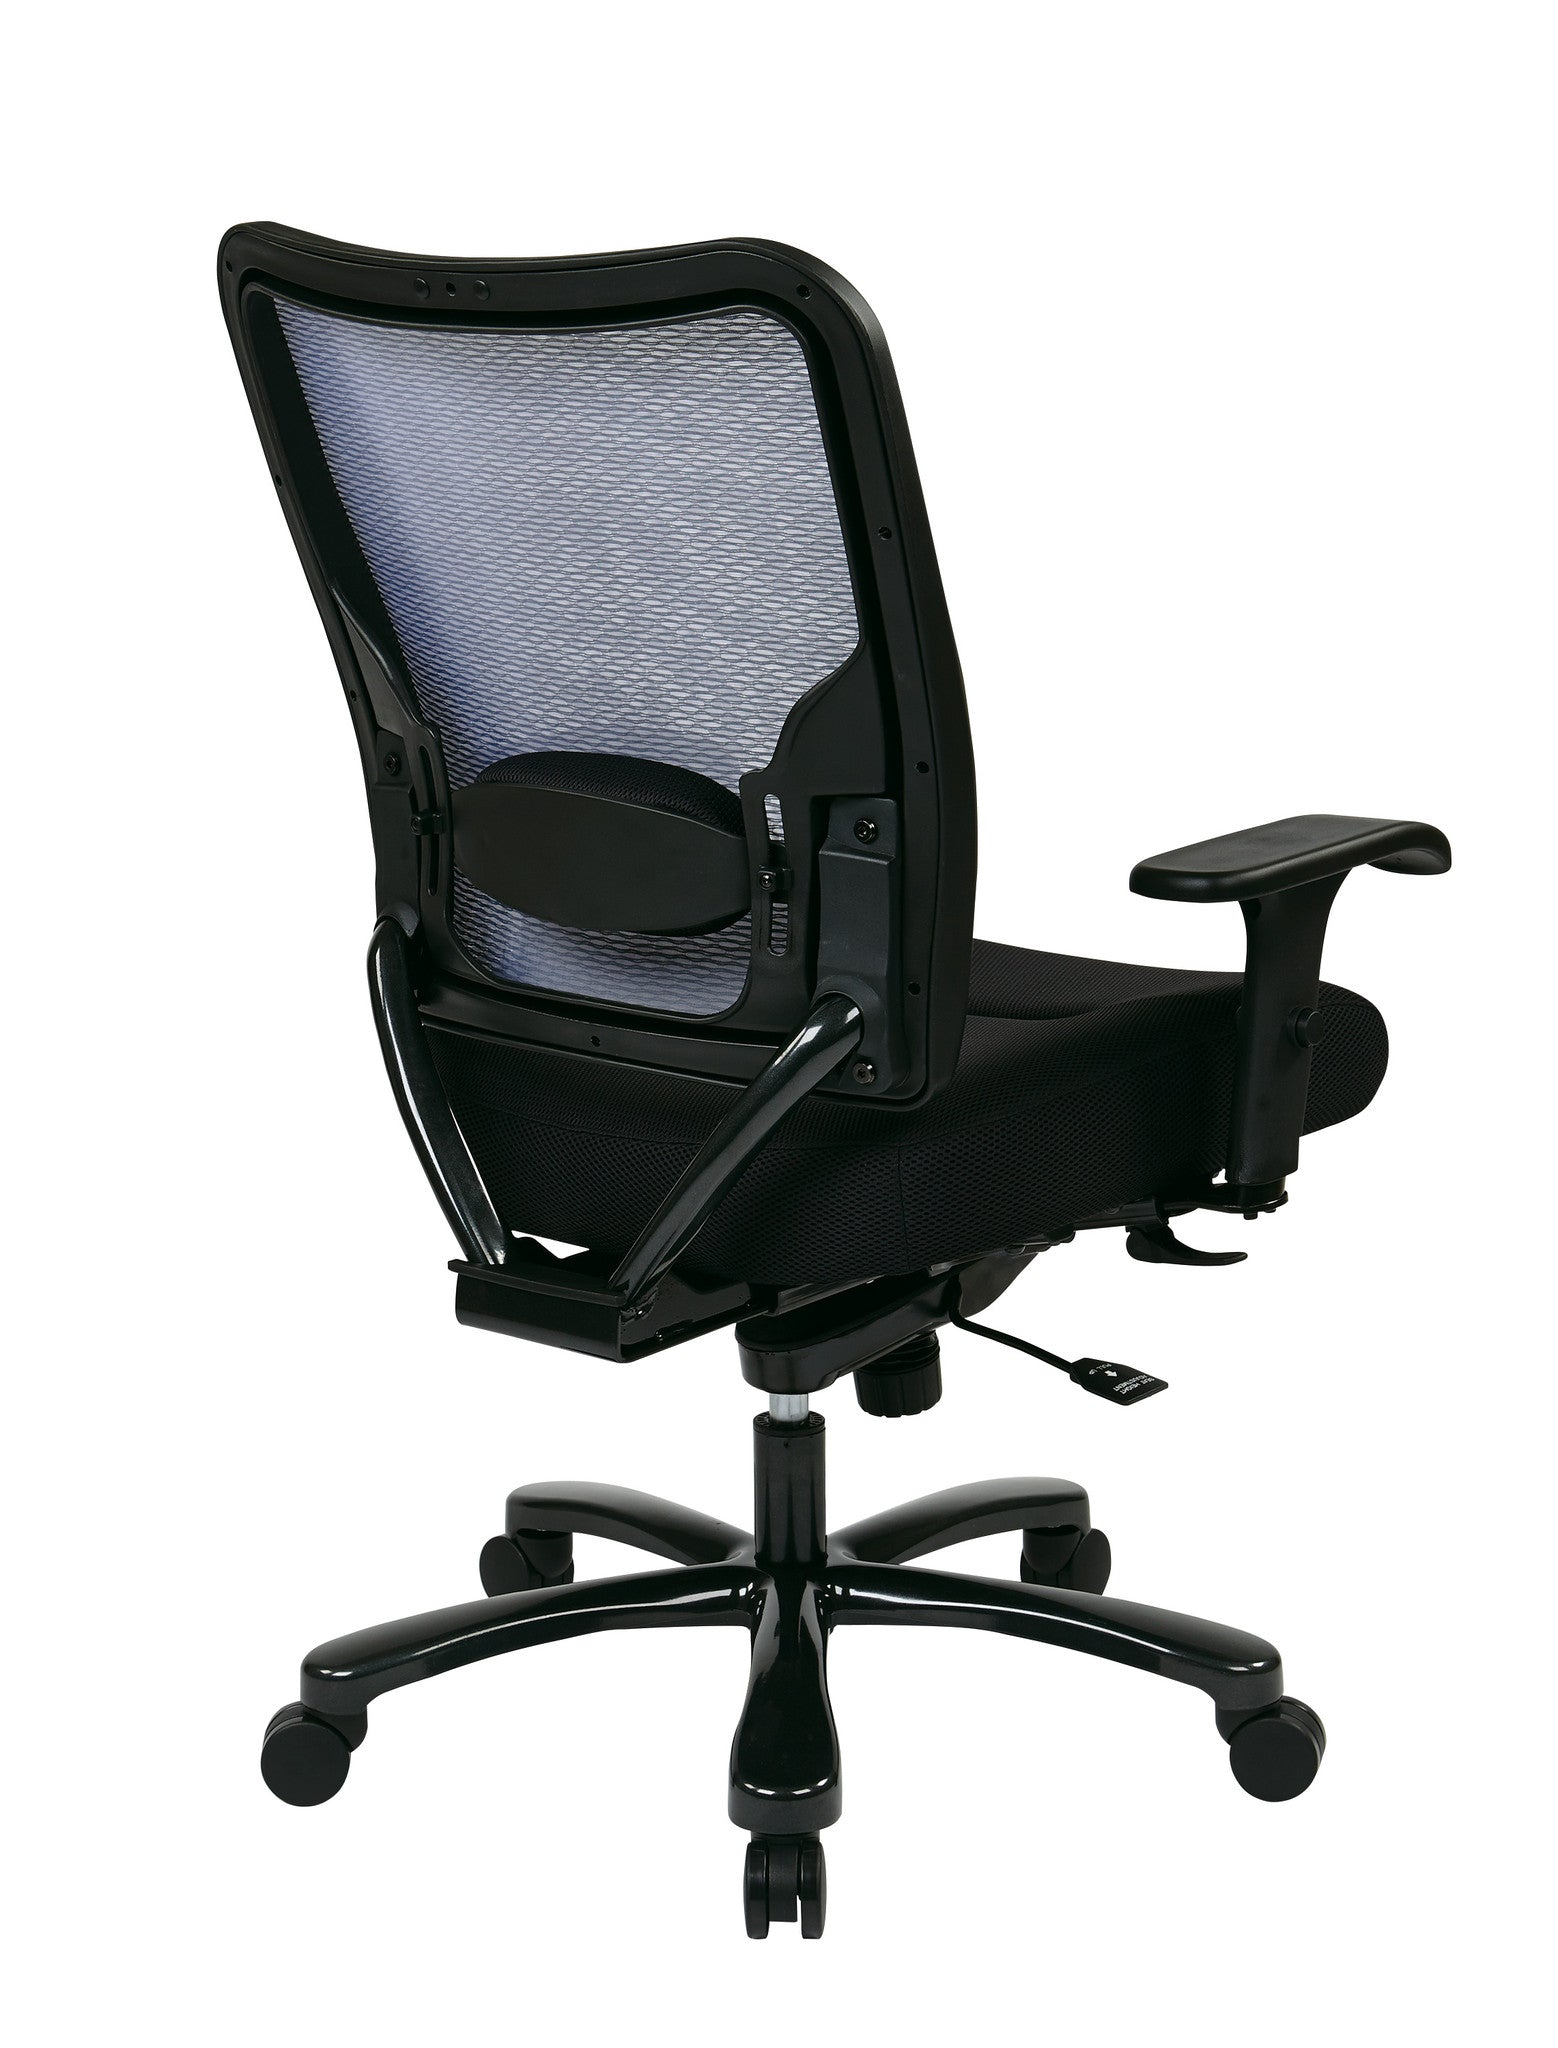 Office Star Space Seating Double AirGrid  Big   Tall Back and Black  Mesh Seat ErgonomicErgonomic Chairs for Standing Desks   Ergo Health Store. Office Star Ergonomic Chair. Home Design Ideas